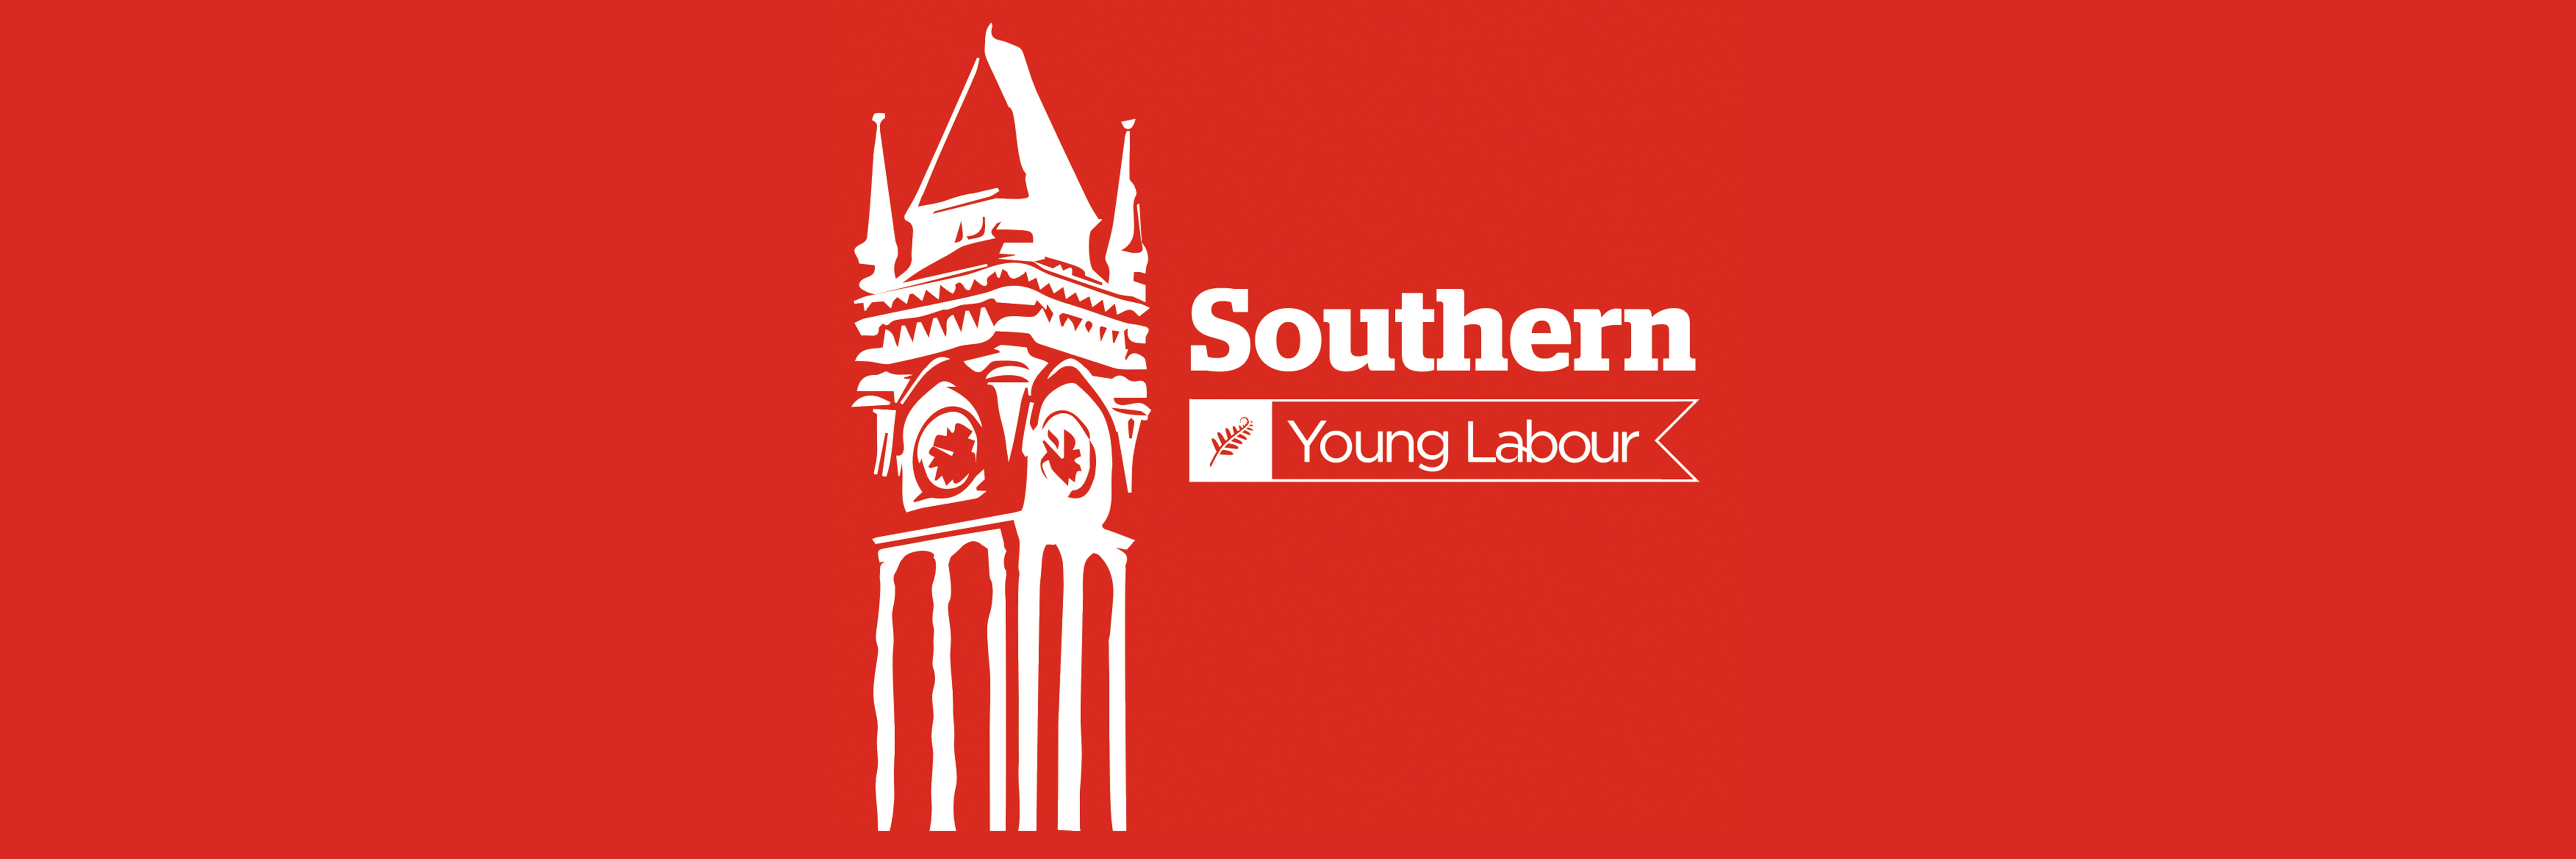 Southern Young Labour